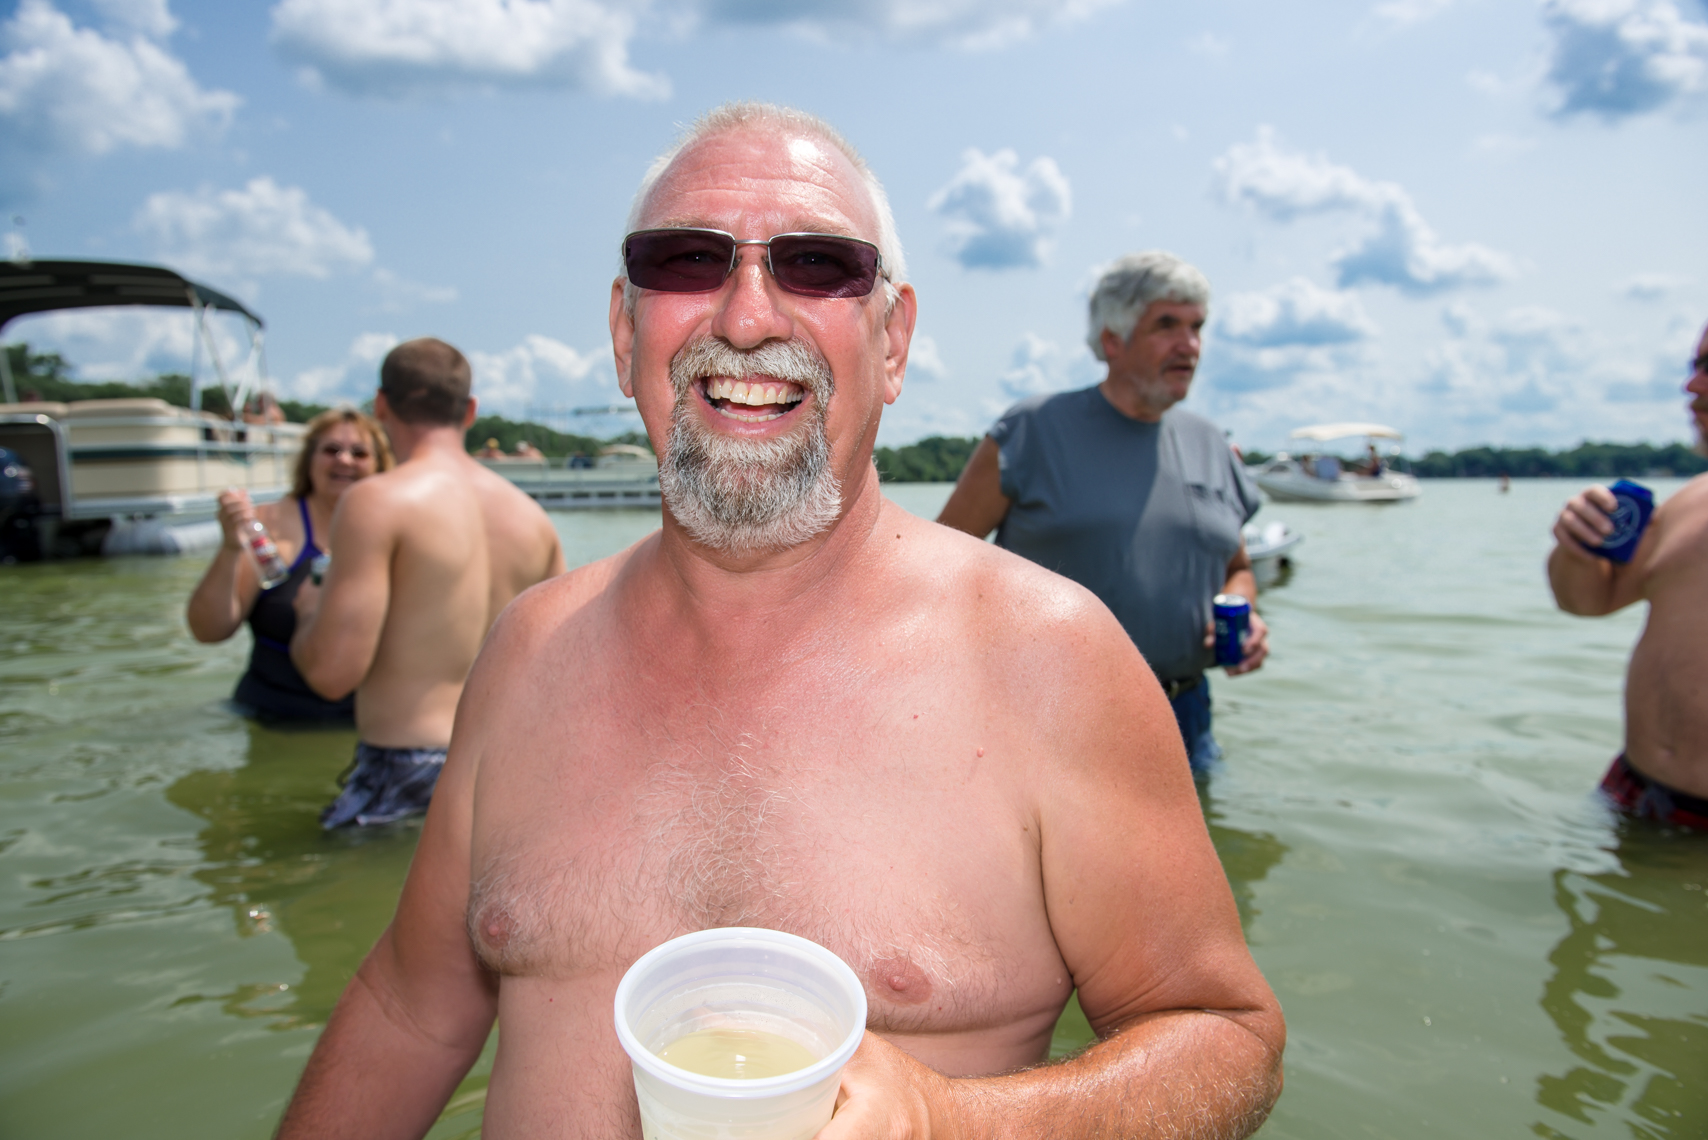 Sunburned man with a beer at a lake party in Wisconsin, reportage, swim suit, lake party, fishing, boat, lake party, summer, beverage, swimming, swim, suit, bathing, confident, summer fun, liquor, travel, Madison, Chicago, Nashville advertising, beverage,